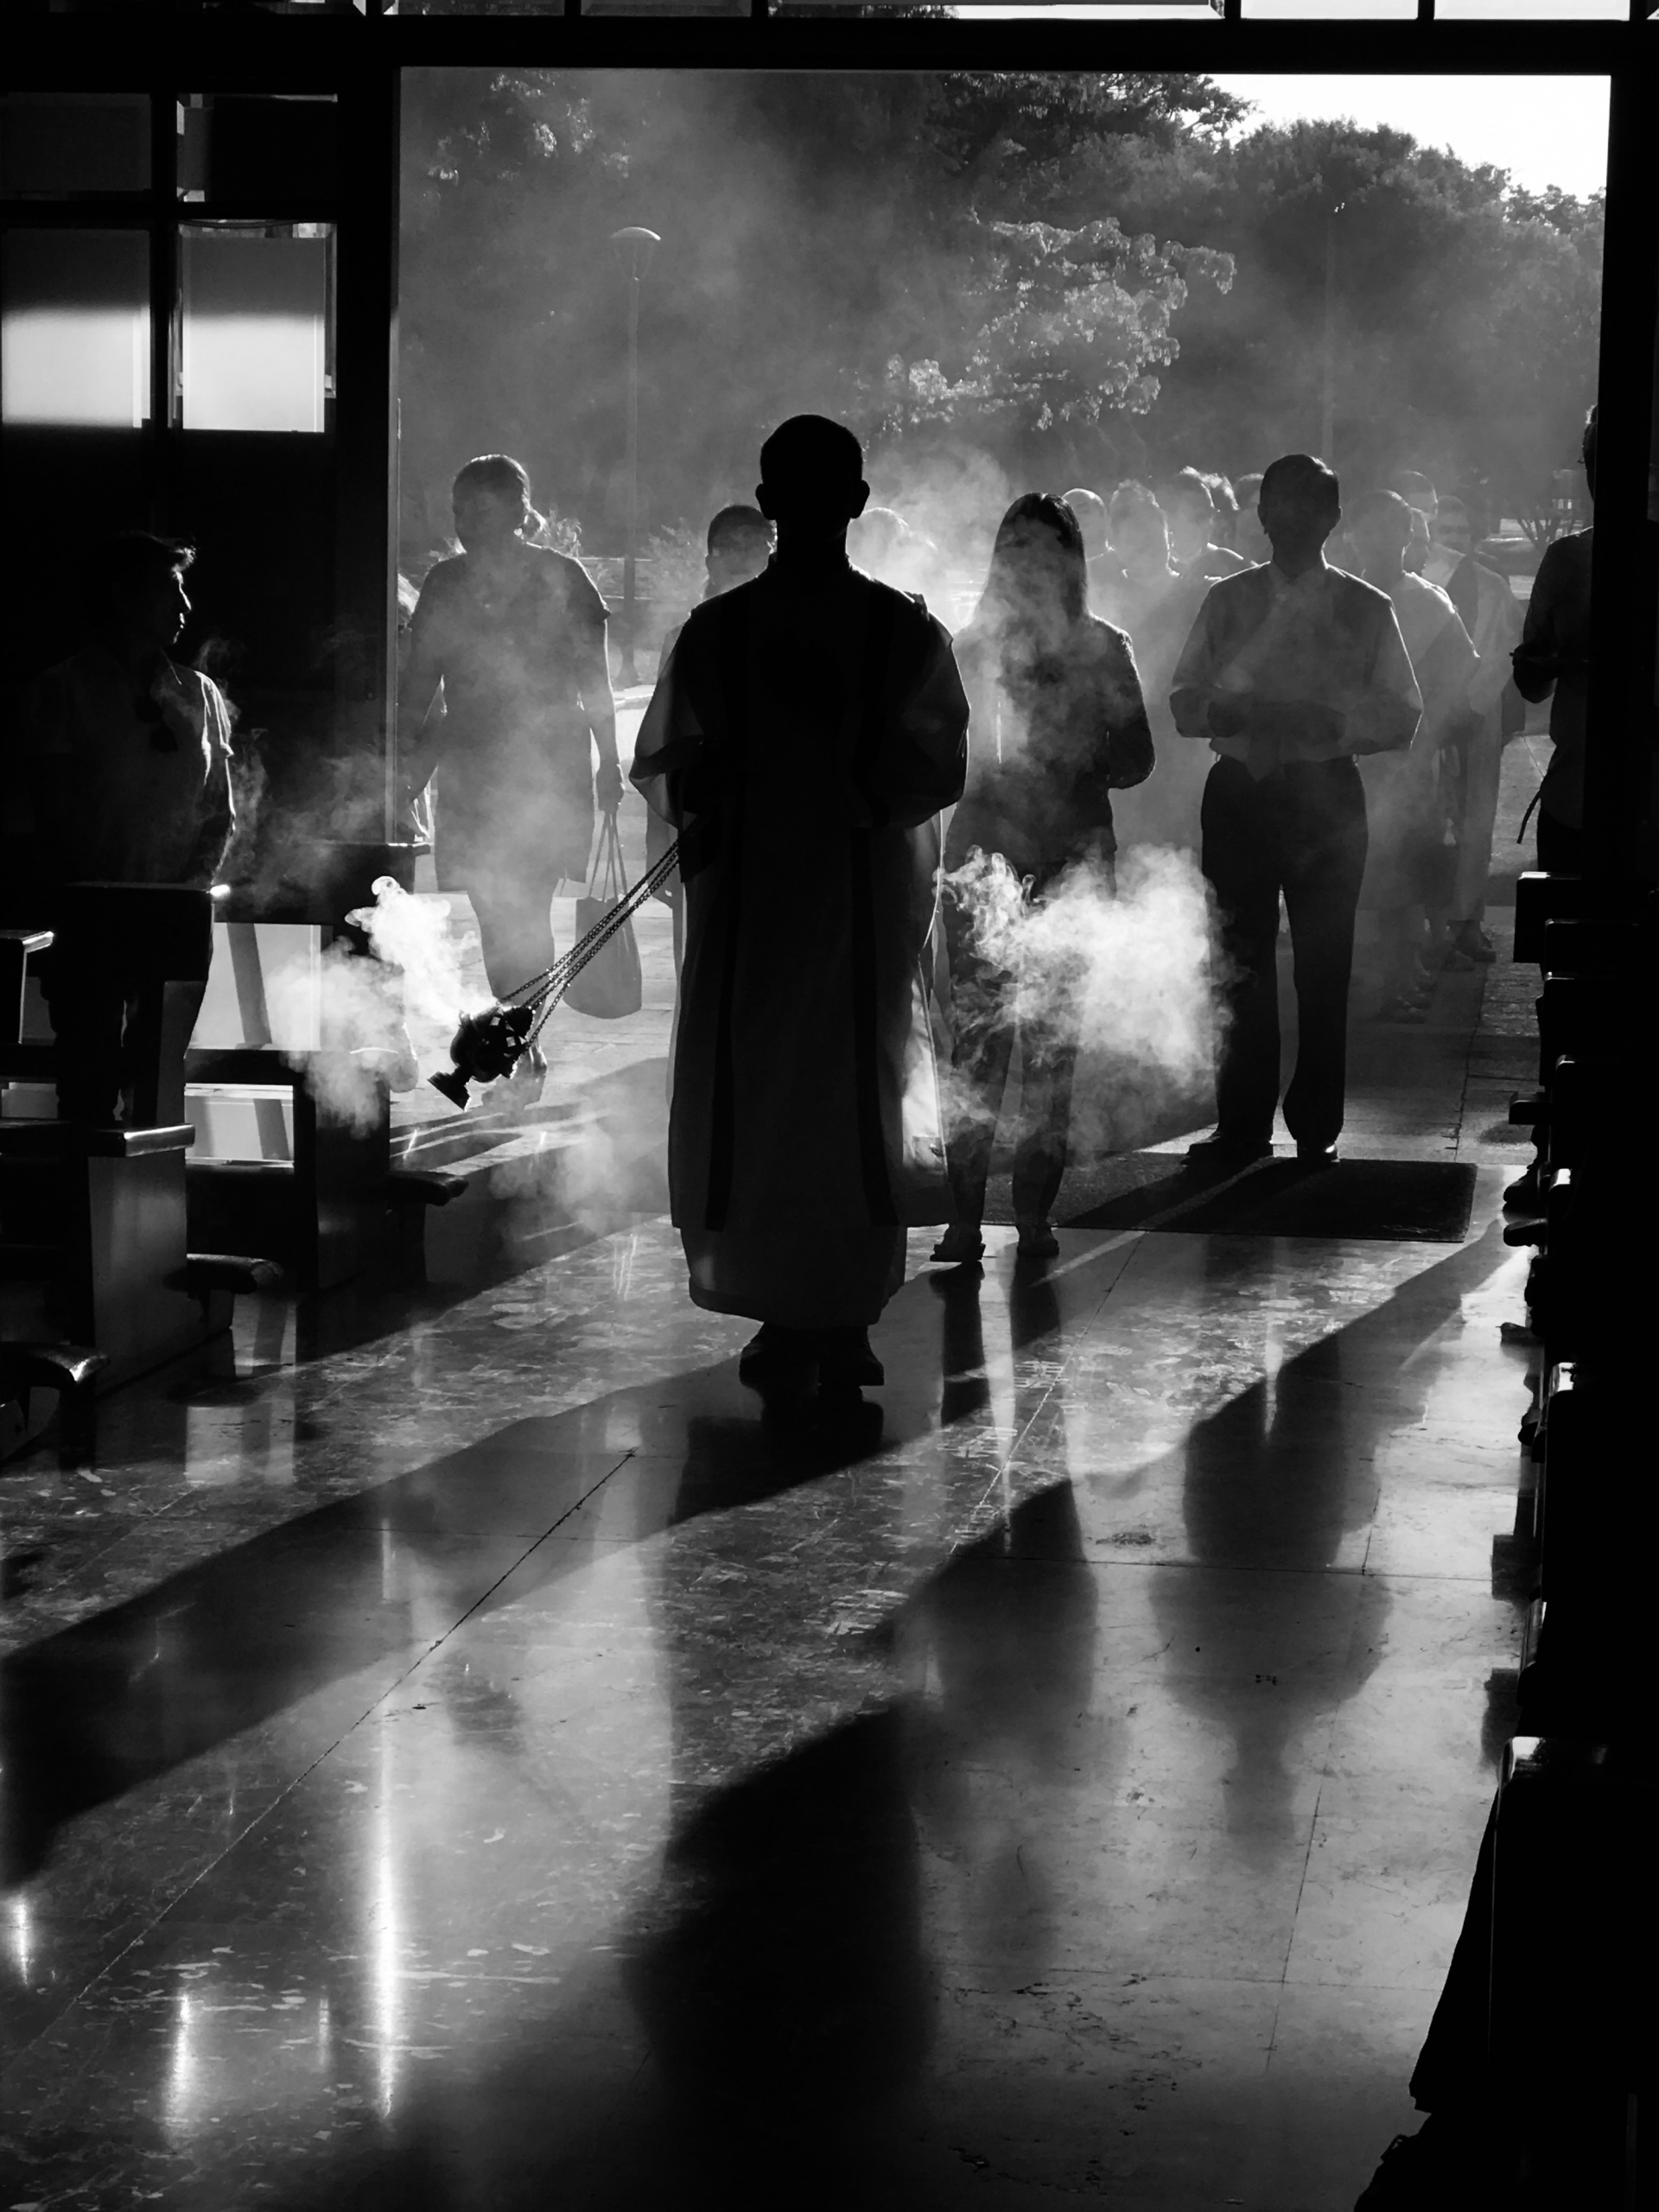 procession, censer, holy thursday, incense, silhouettes, people, entry